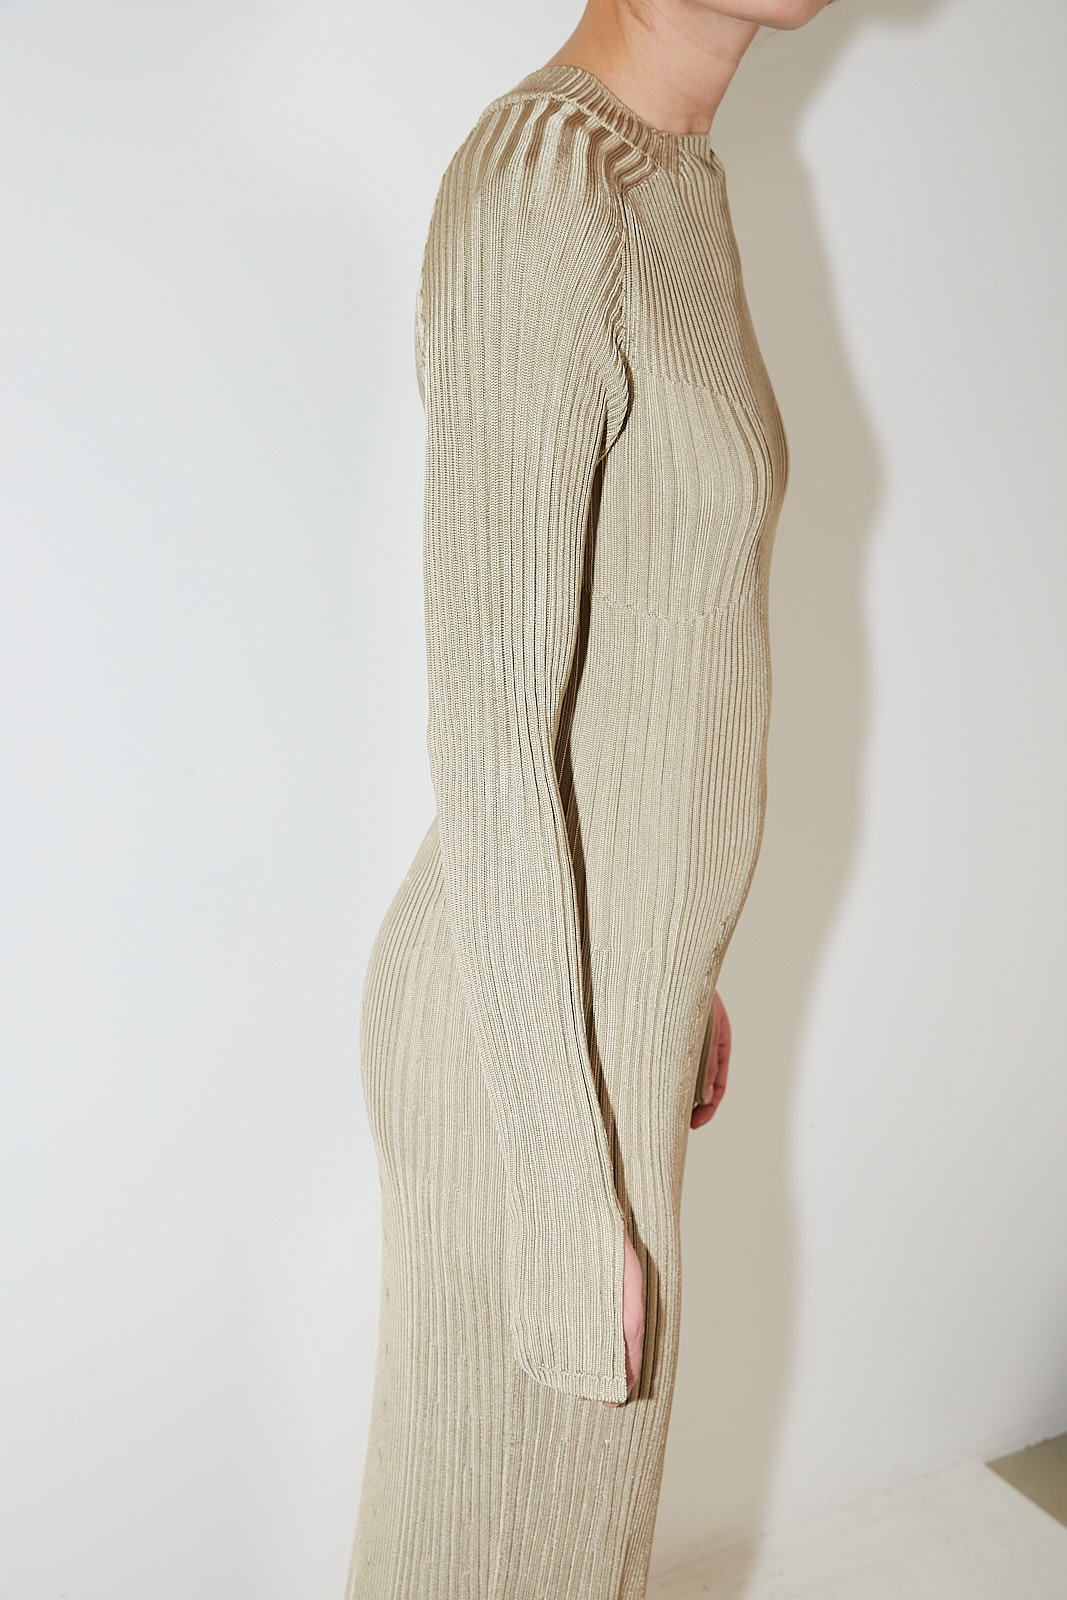 Aeron - Brise fine knit dress